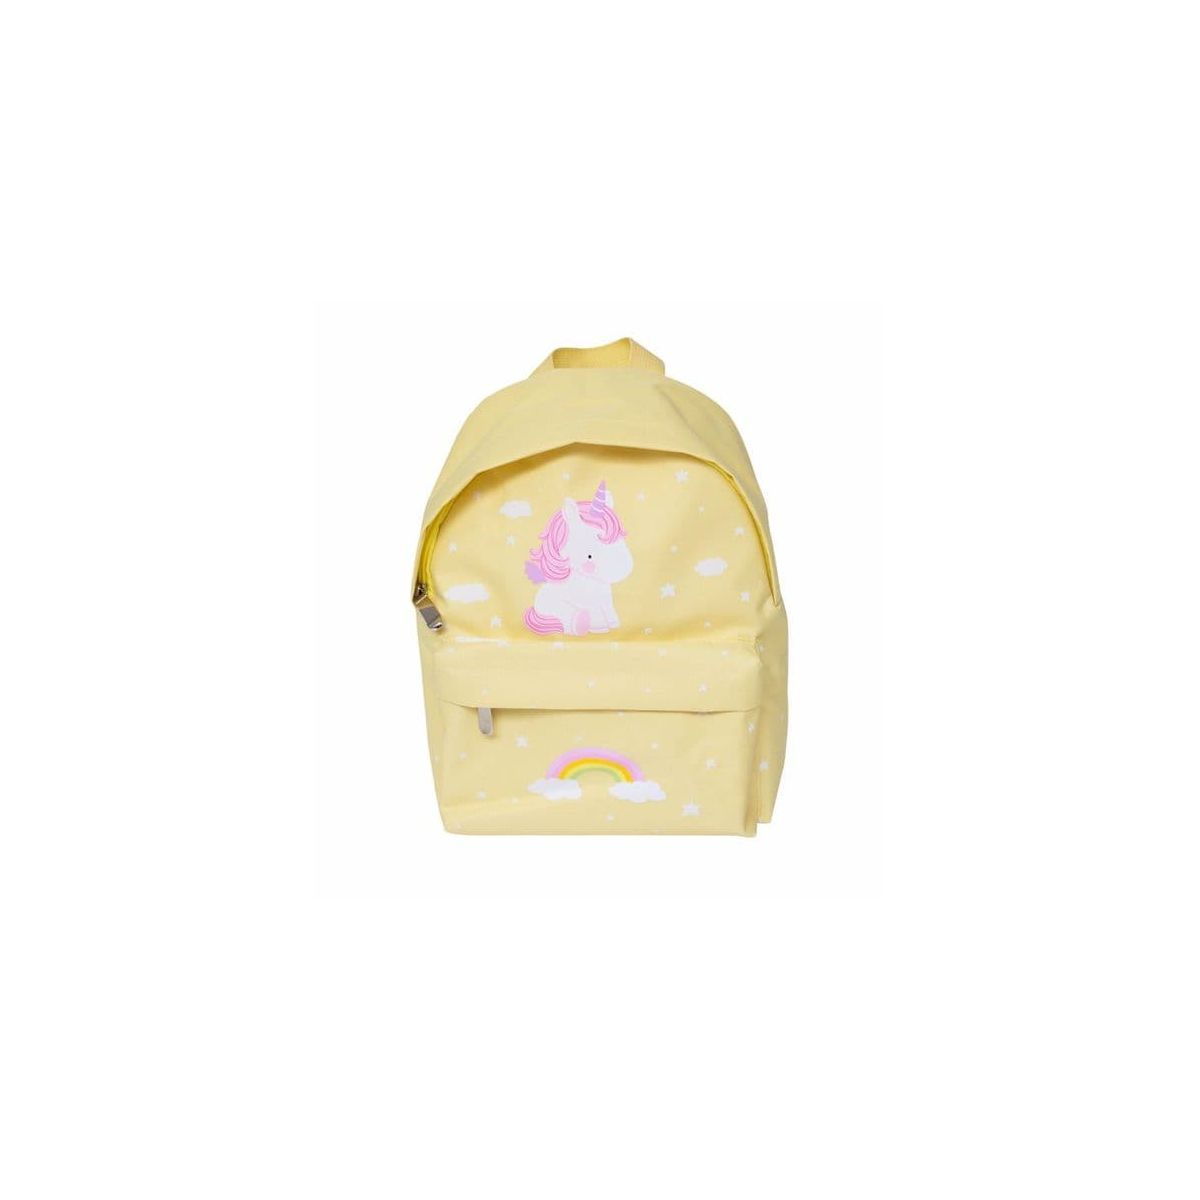 c329e9c8a02 Παιδική Τσάντα Πλάτης Mini Backpack Unicorn BPUNYL08 - A Little Lovely  Company